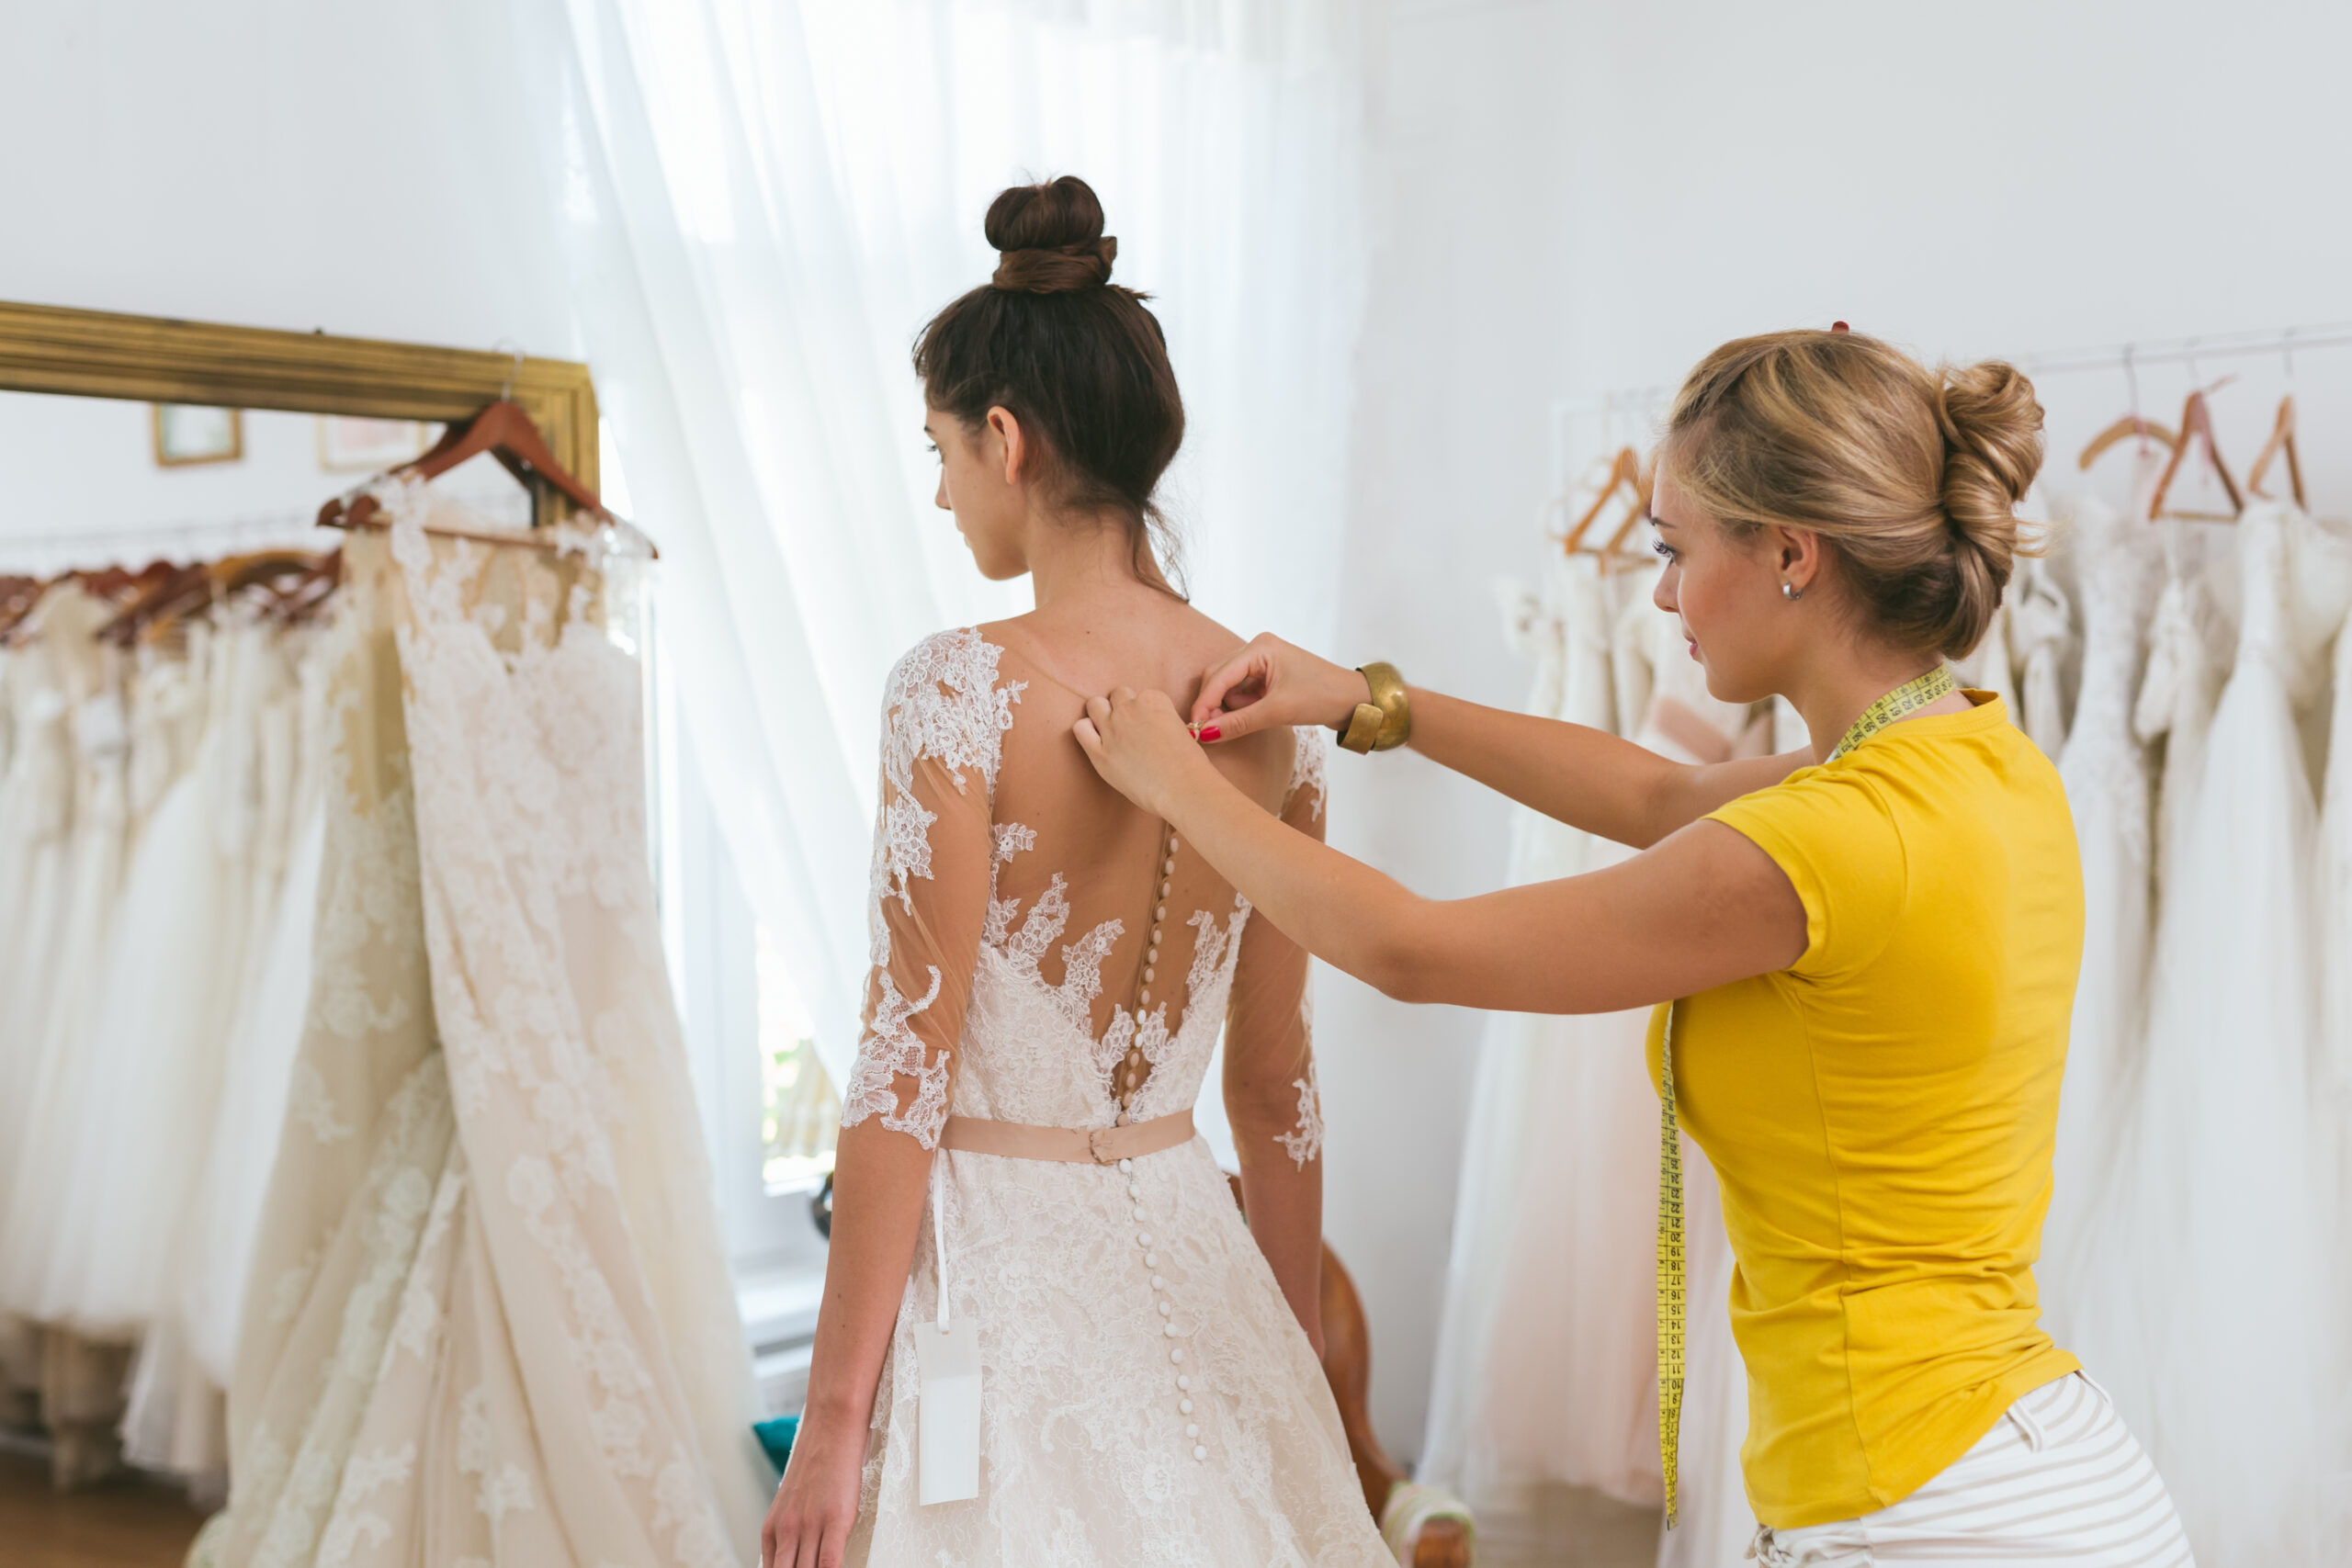 How to Have a Successful Wedding Dress Fitting